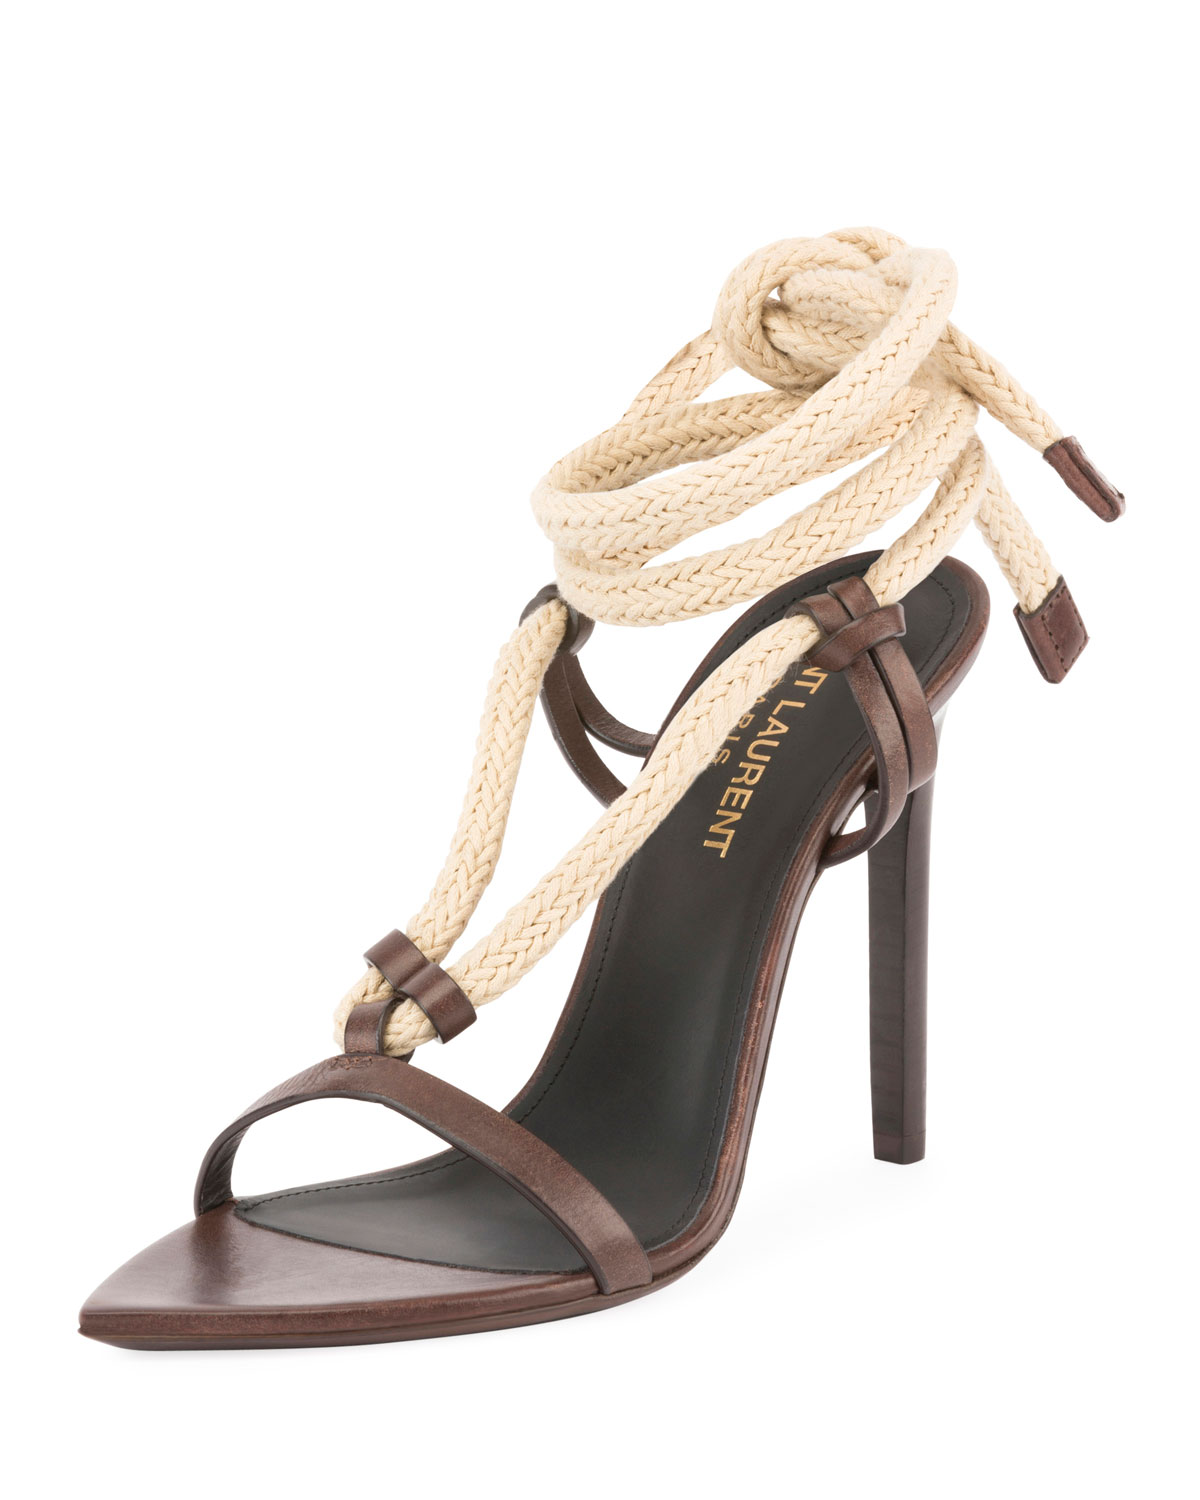 b09314a3b3c Saint Laurent Majorelle Leather Rope Sandal